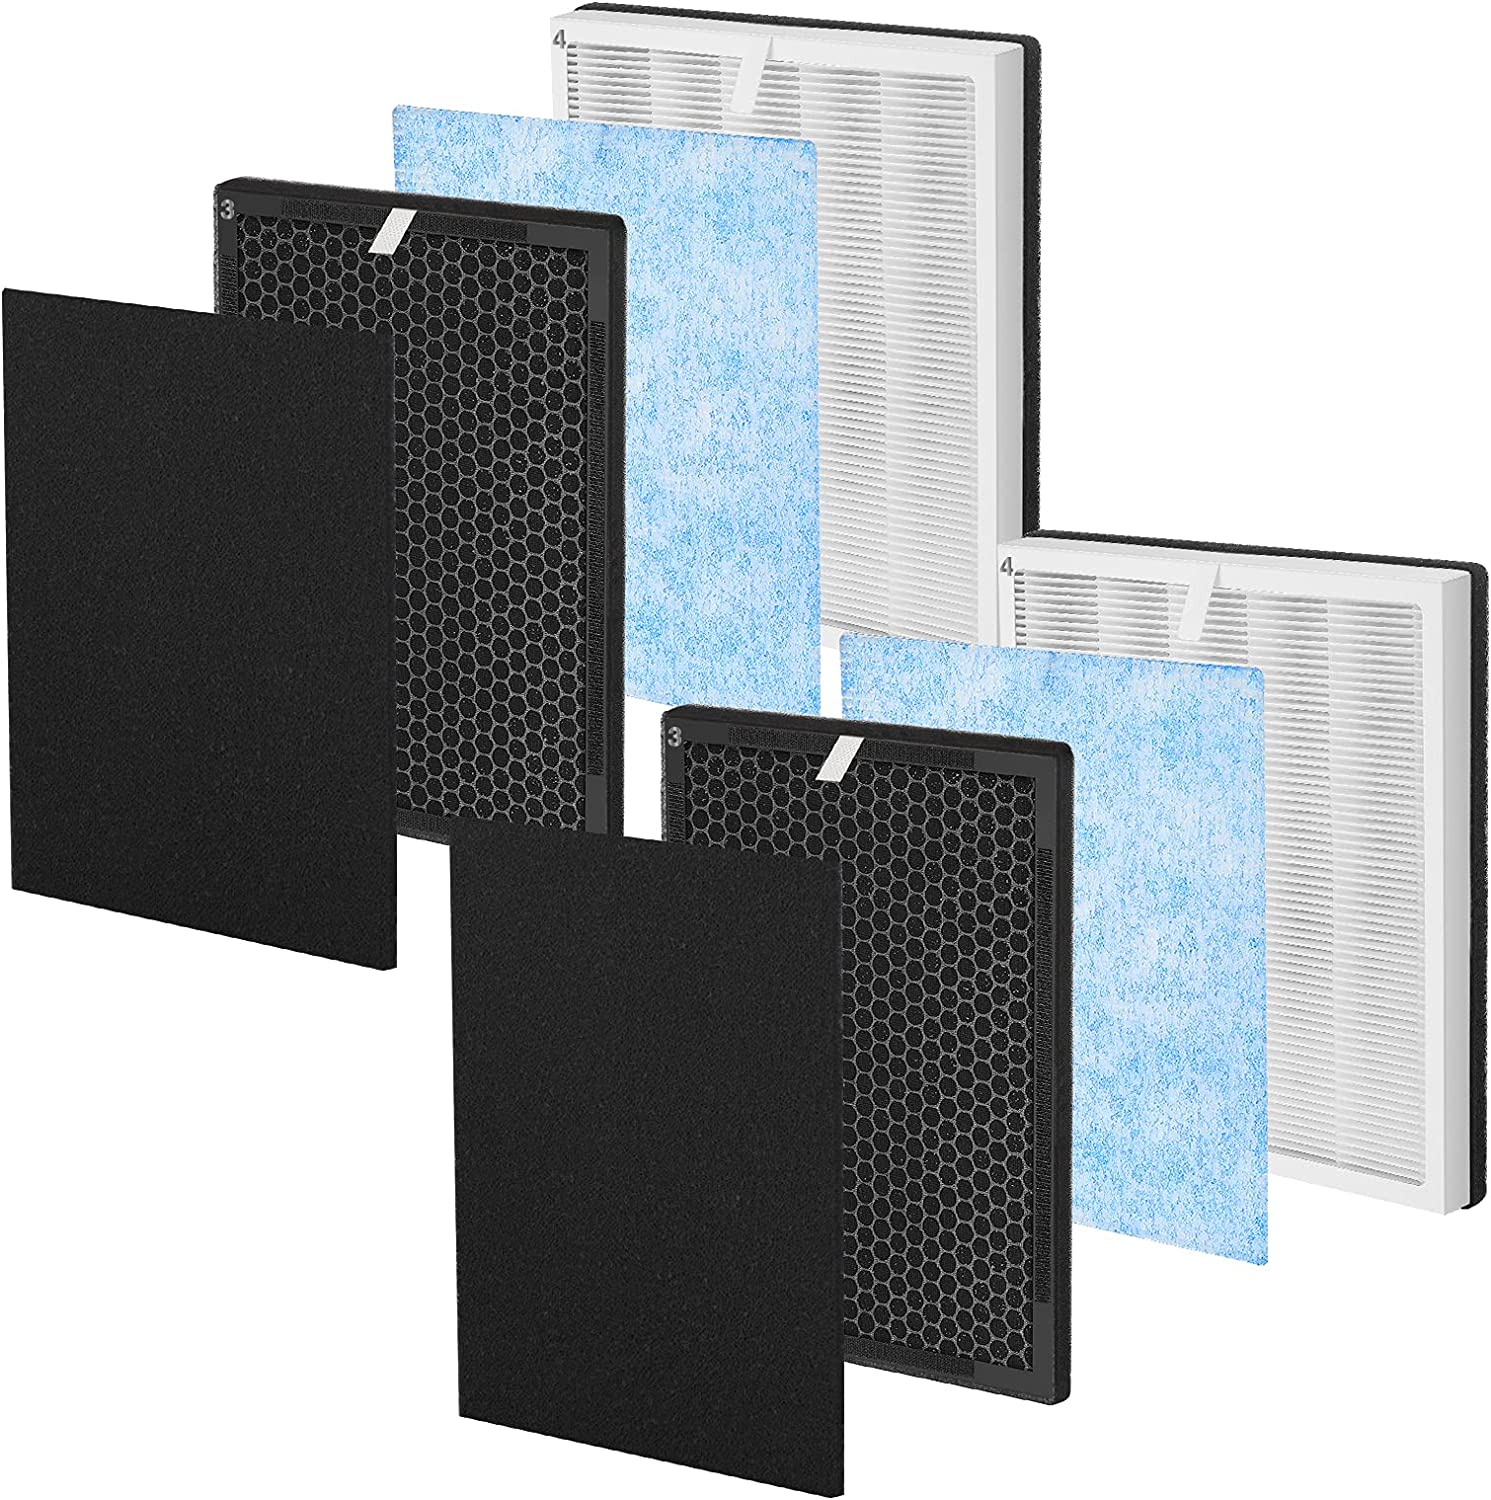 iSingo RP-AP001 True Free shipping anywhere in the nation Genuine HEPA Replacement Filter RENP Compatible for